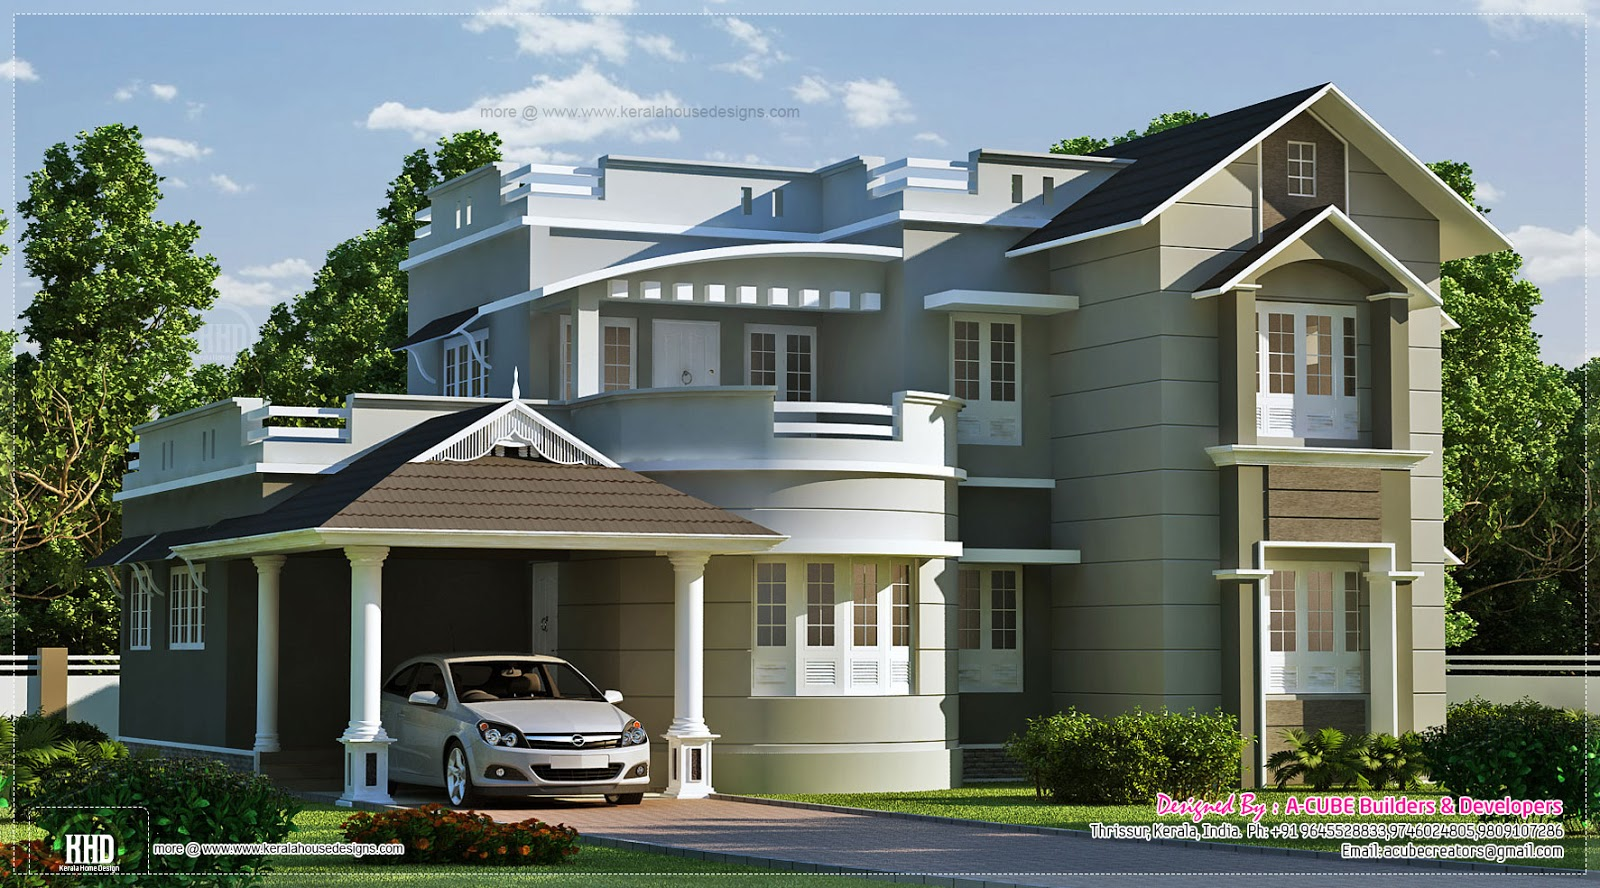 New style home exterior in 1800 kerala home for Home designs exterior styles